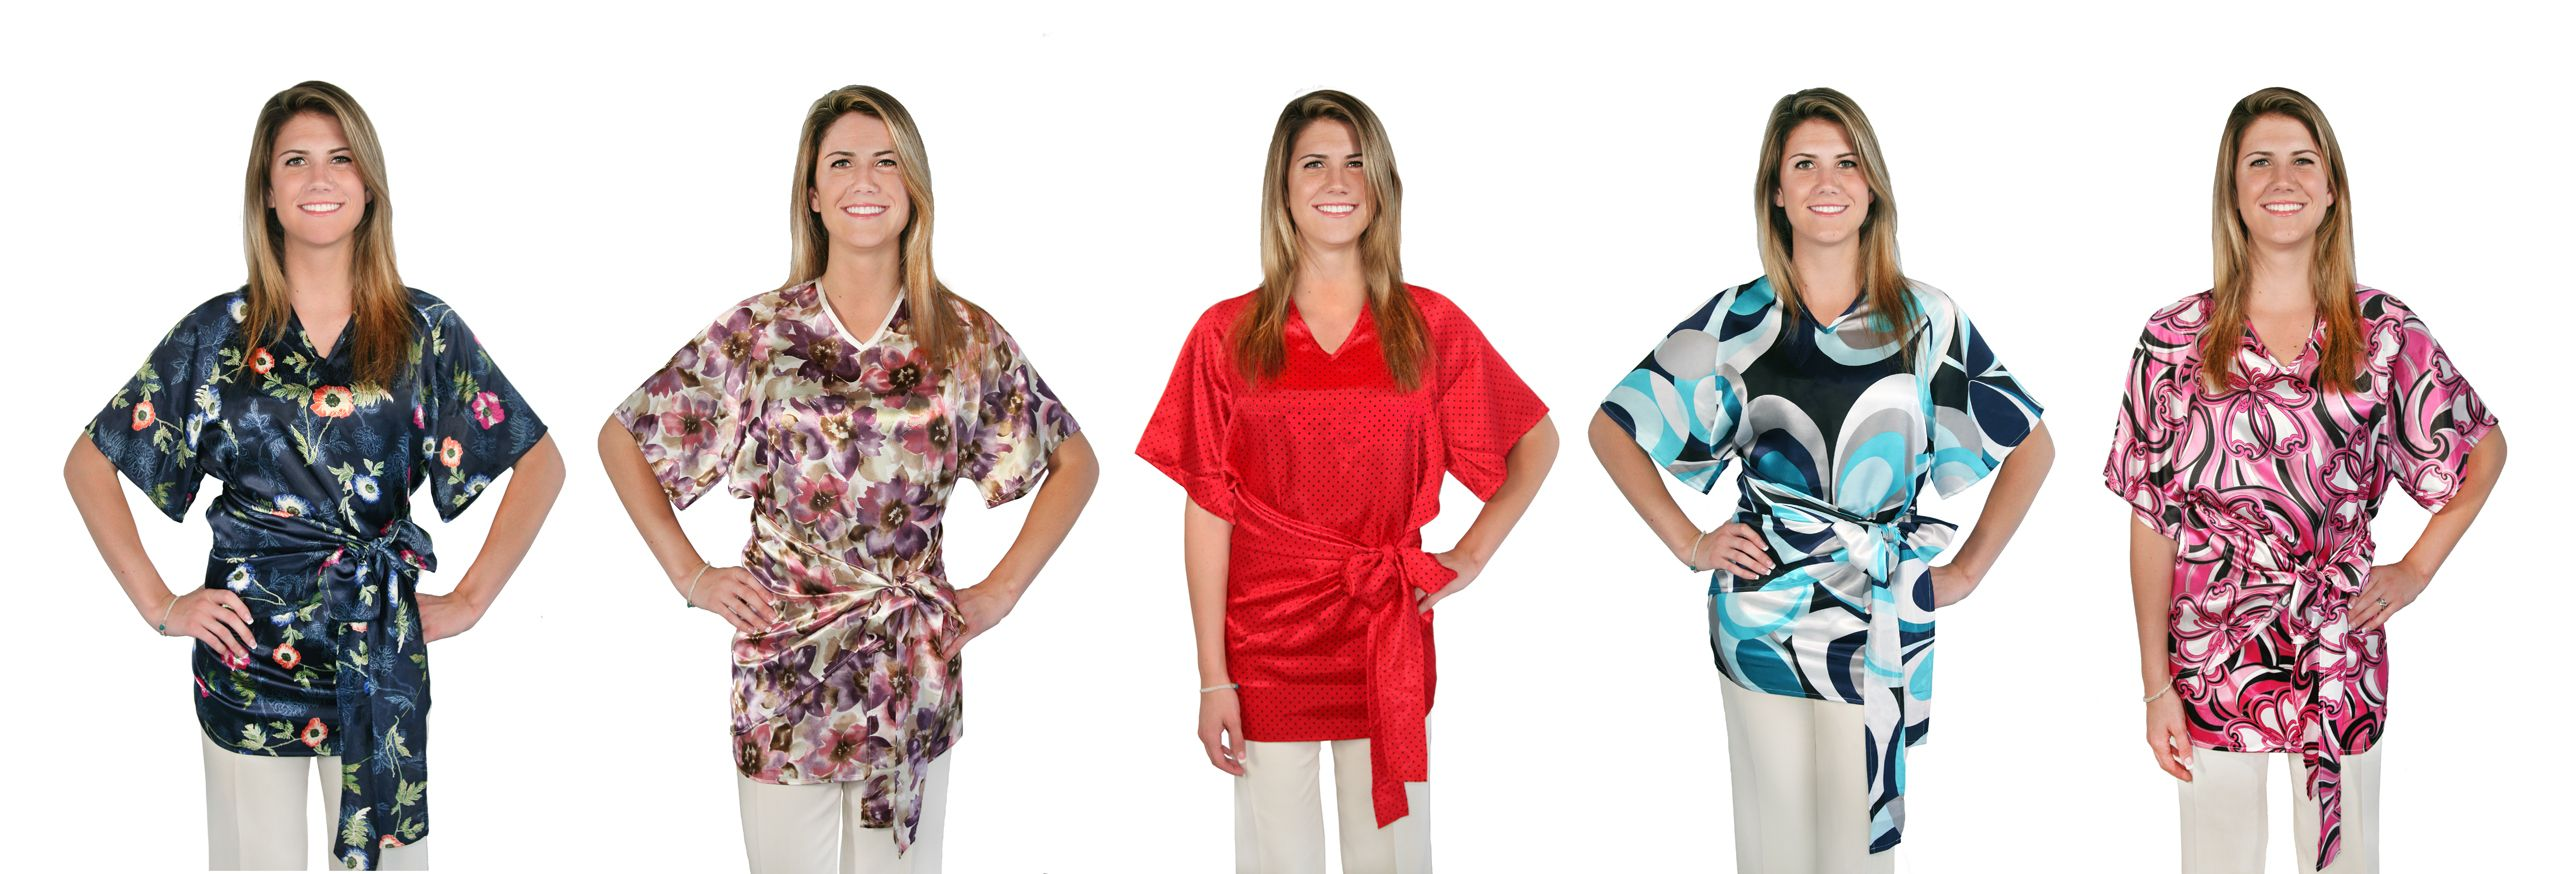 Radiant Wrap Radiation Gowns 59